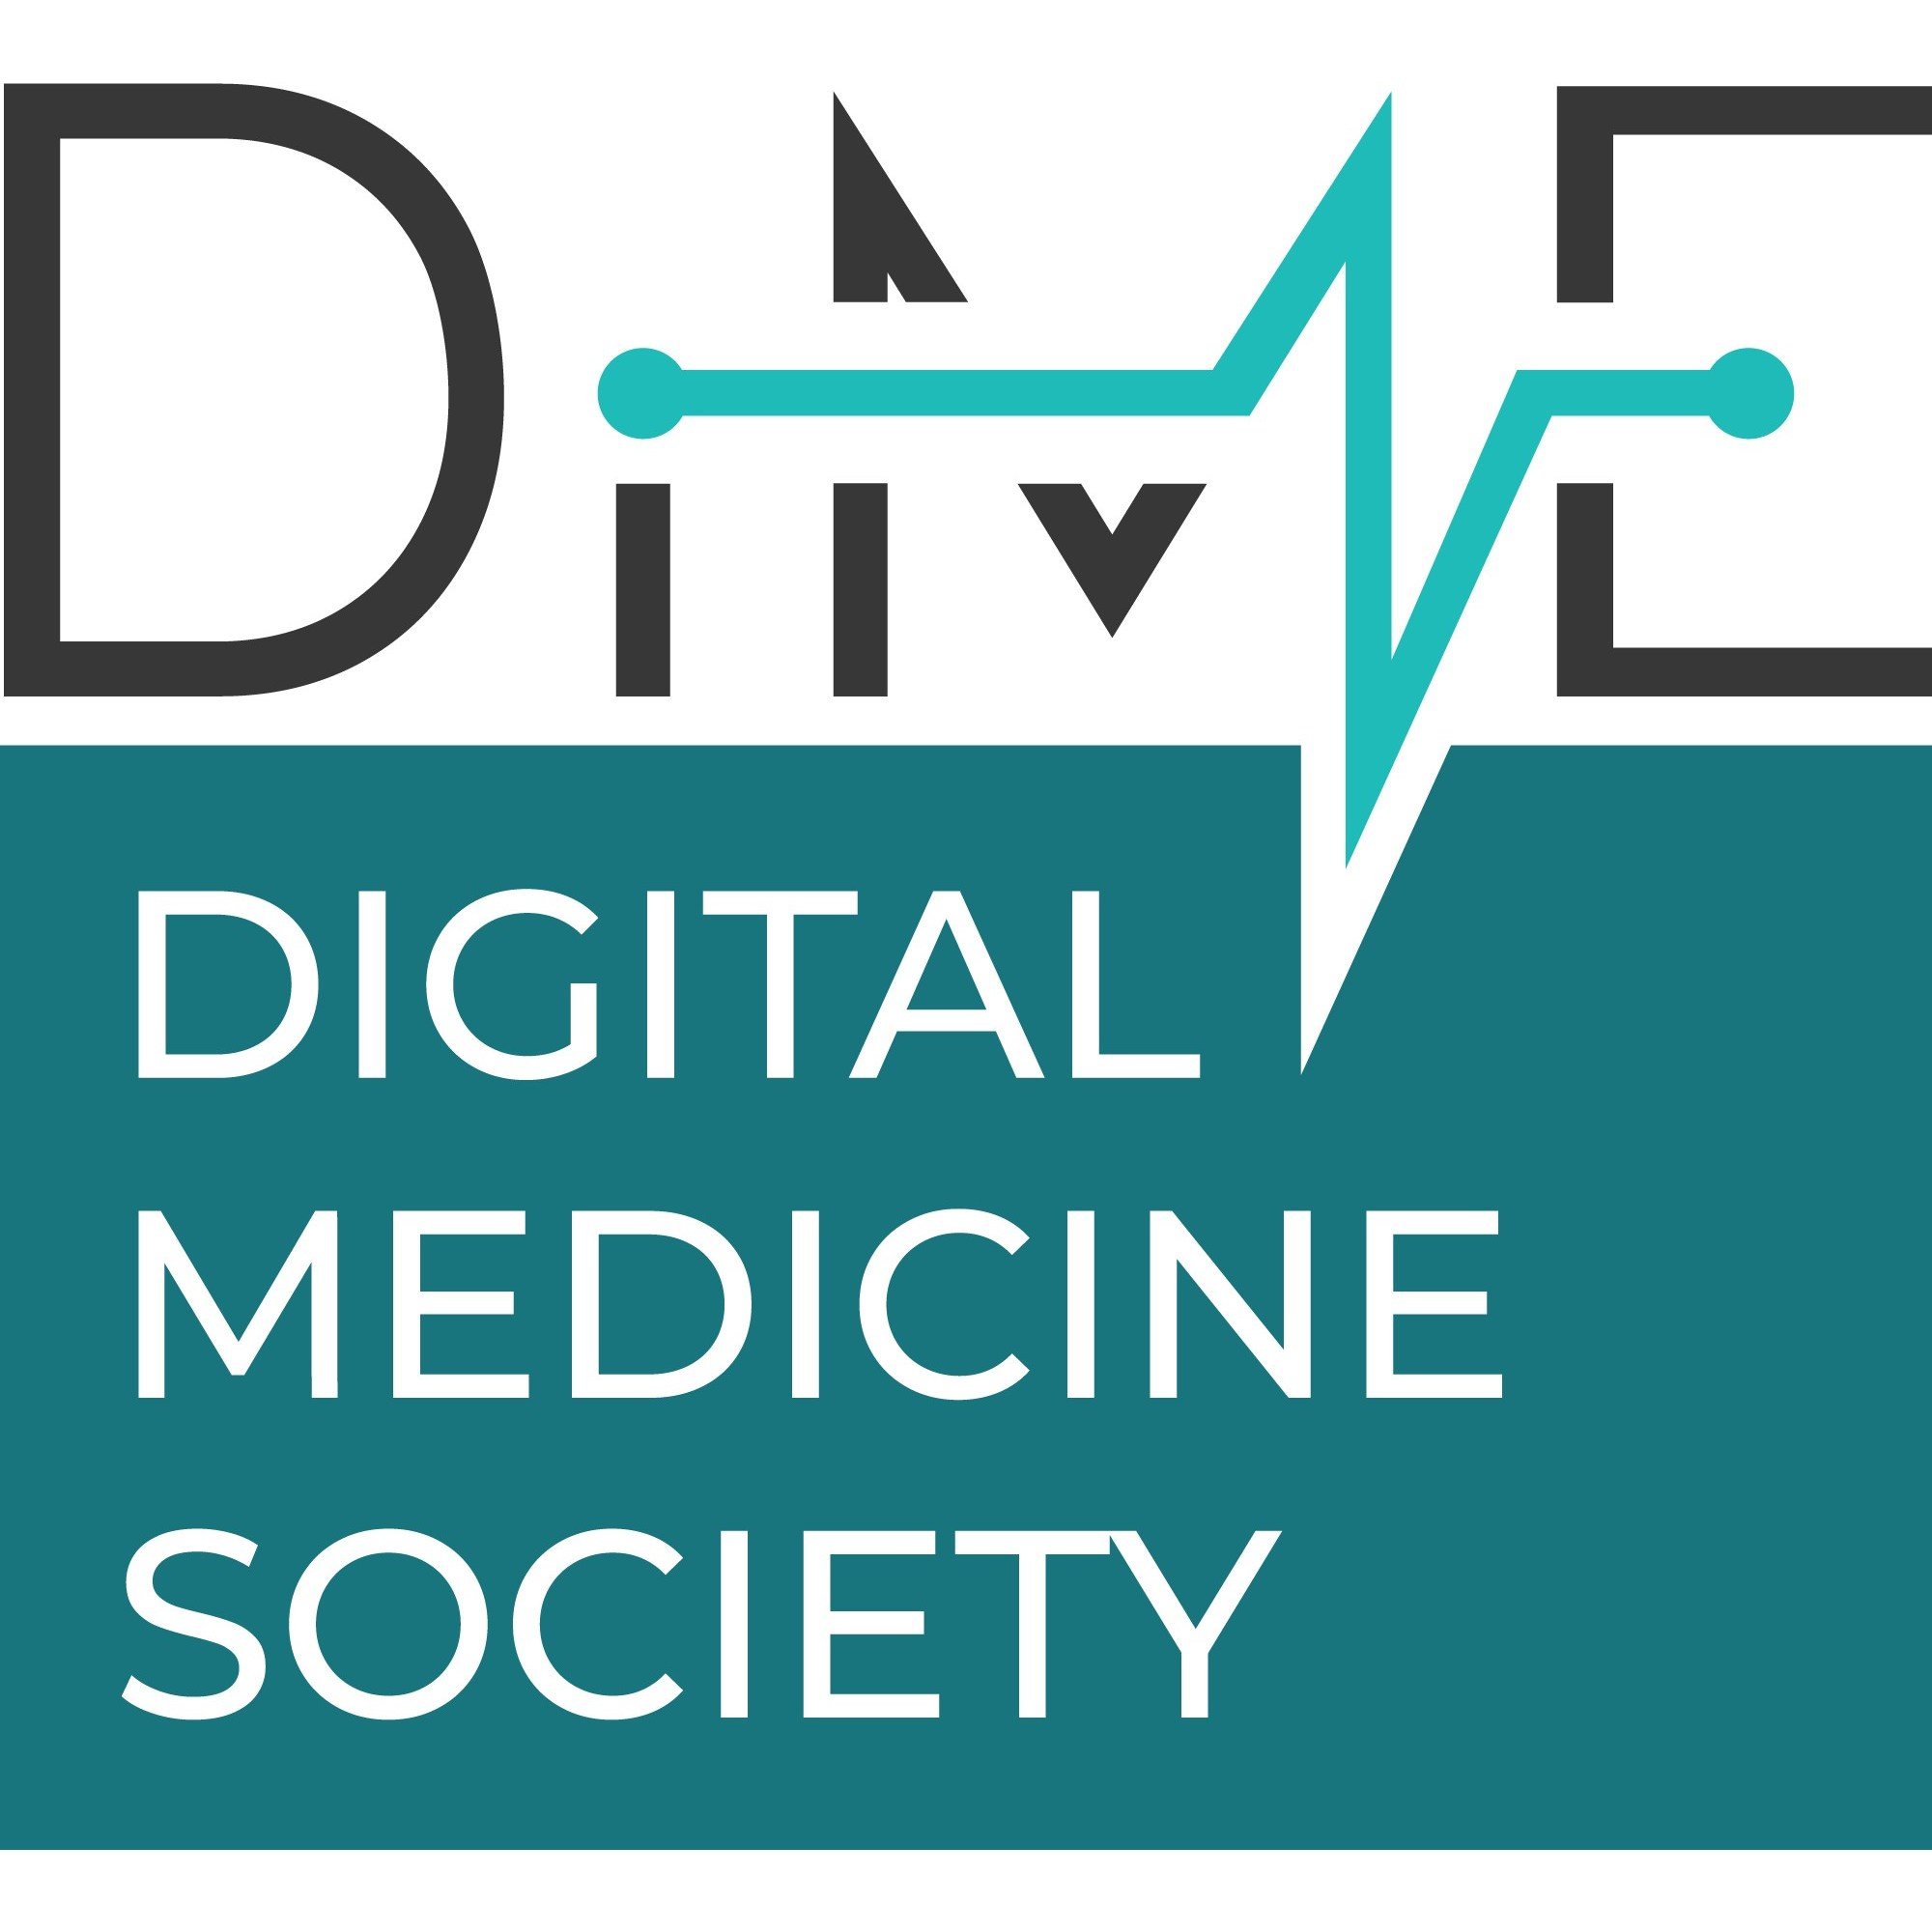 Digital Health, Digital Medicine, Digital Therapeutics (DTx): What's the difference?